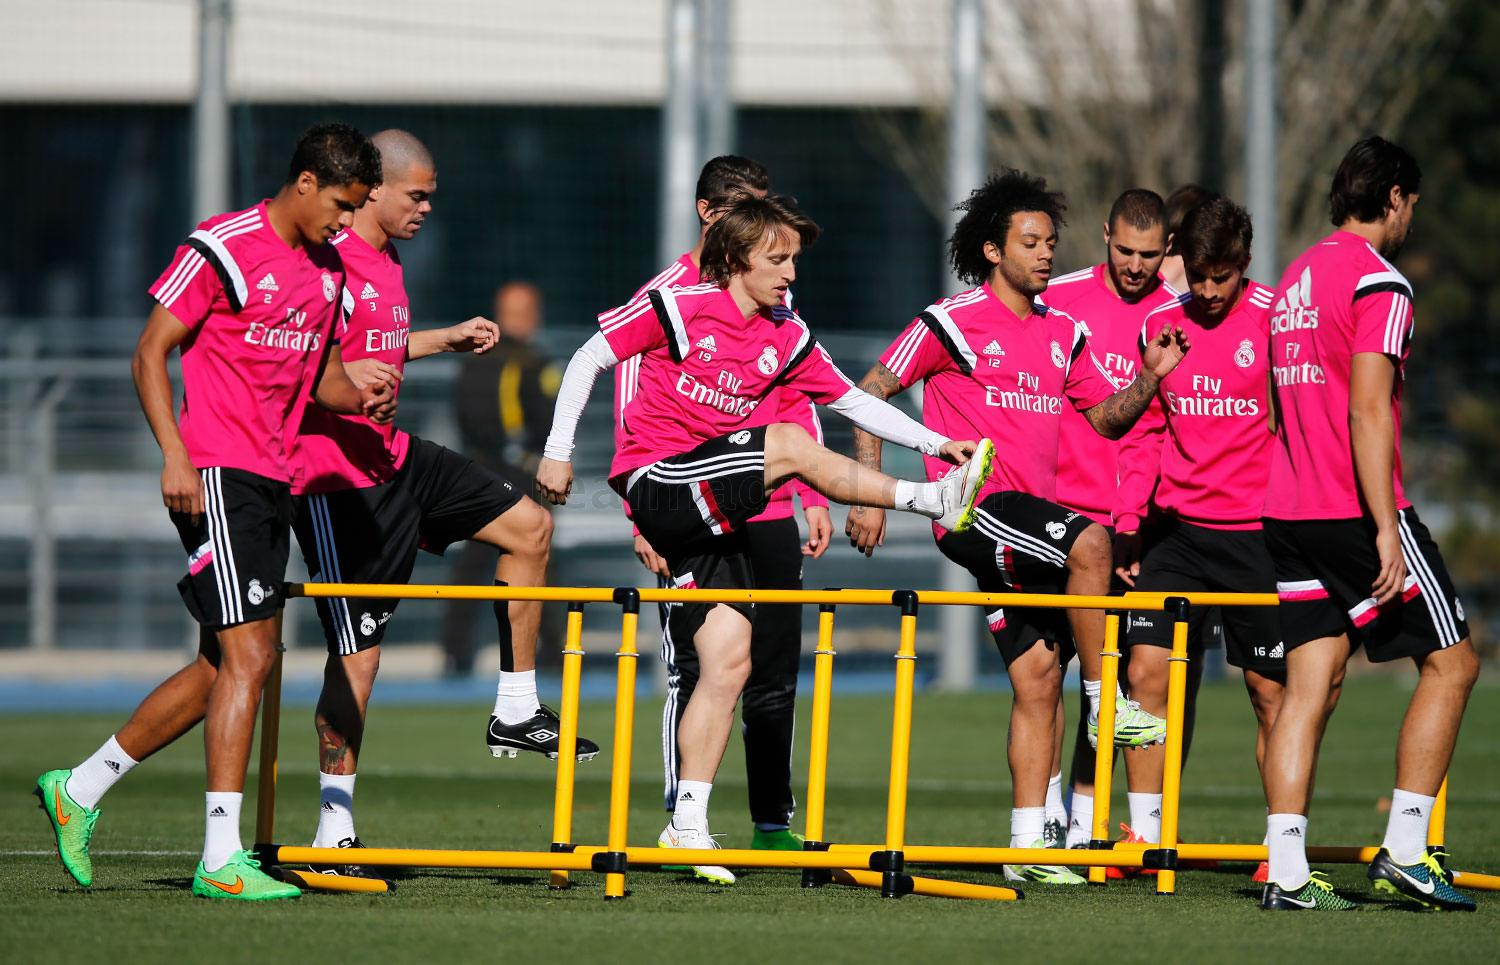 Real Madrid - Entrenamiento del Real Madrid - 06-03-2015